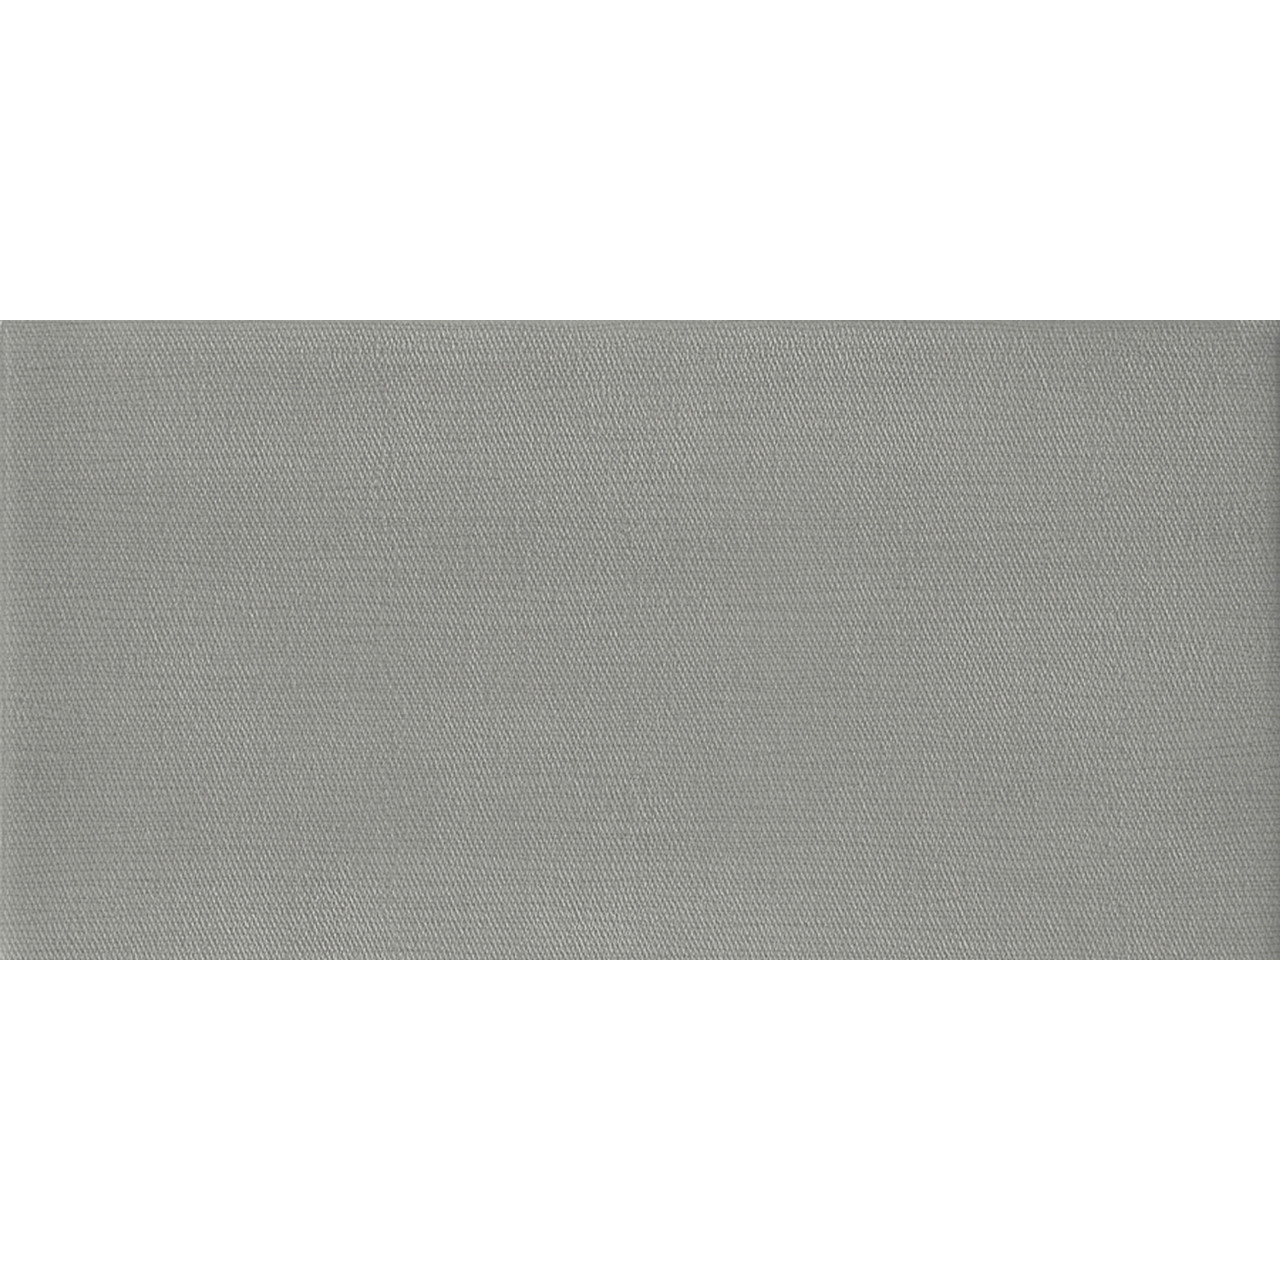 Grafen Grey 30cm x 60cm Ceramic Tile